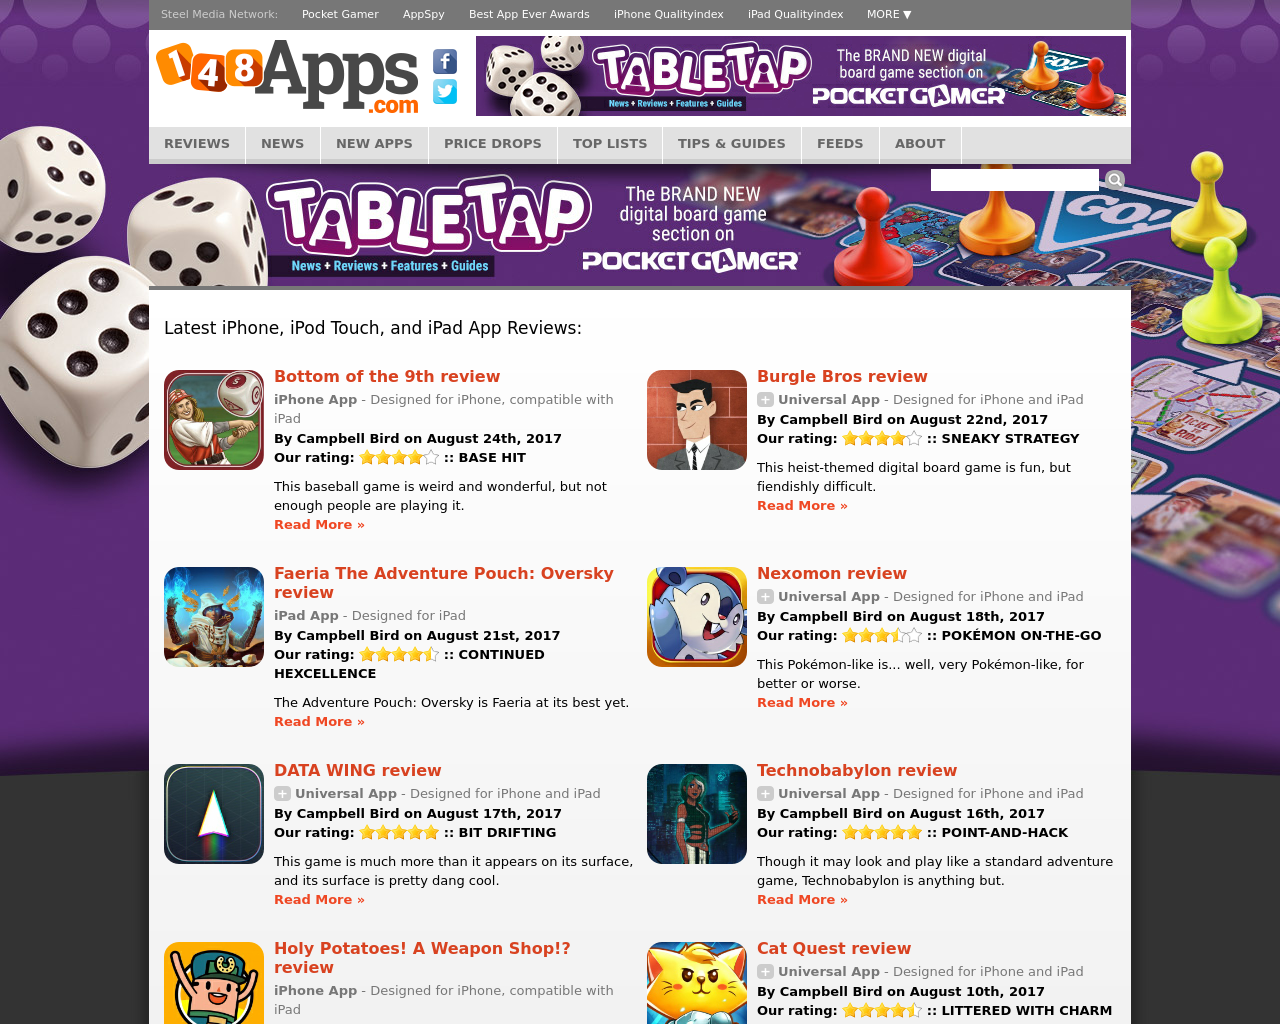 148Apps-Advertising-Reviews-Pricing